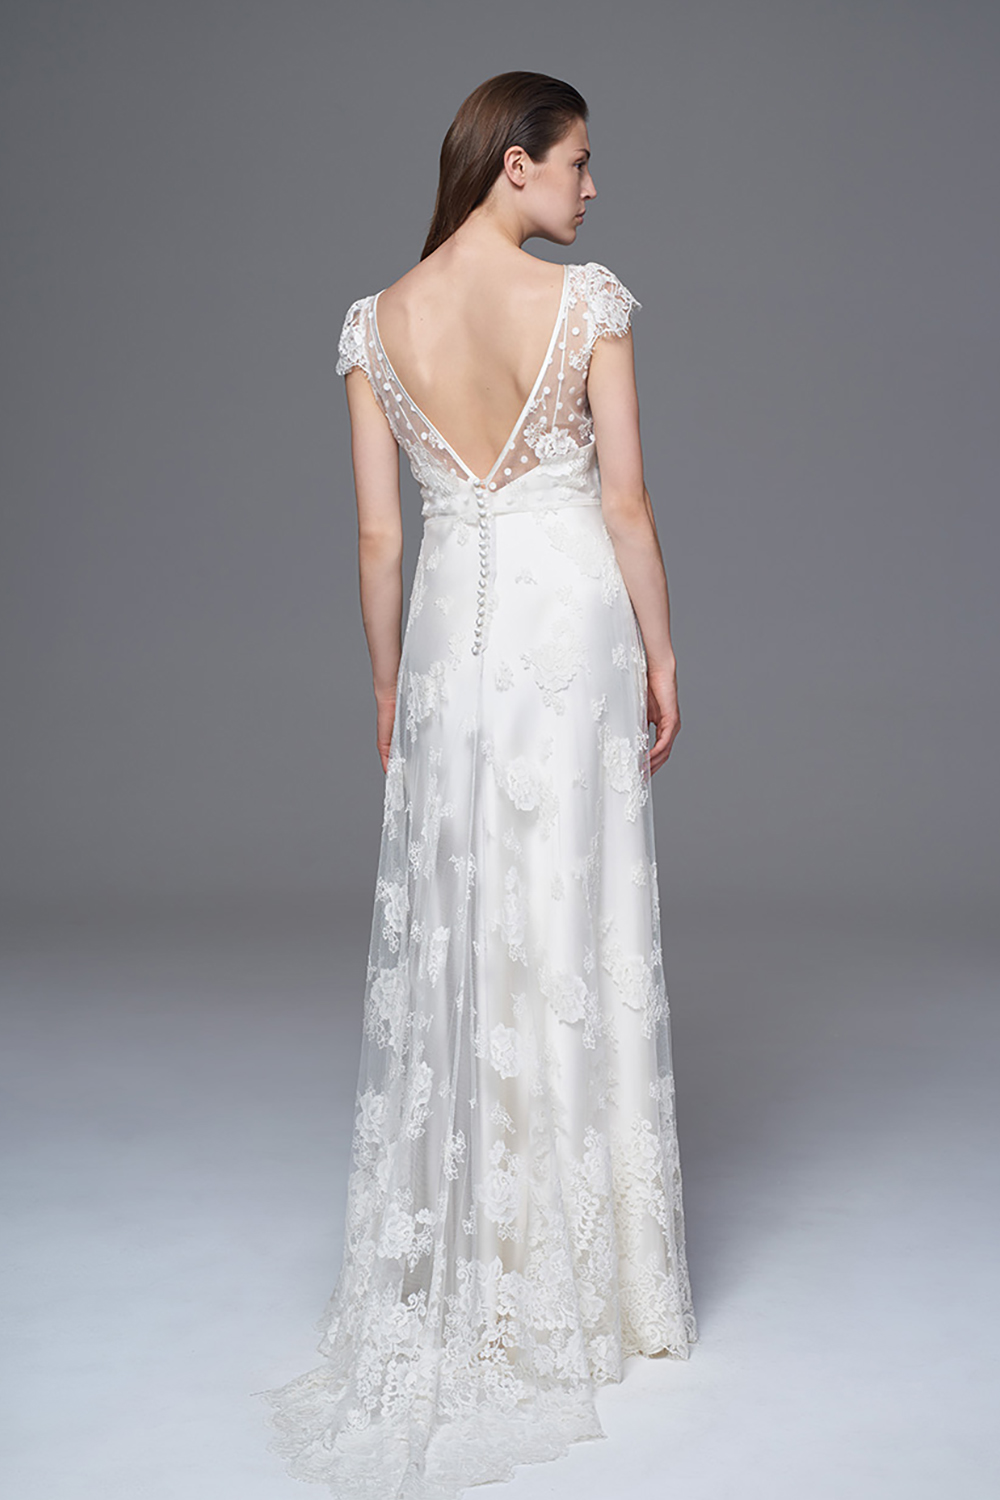 THE PEONY FRENCH LACE AND POLKA DOT V FRONT DRESS WITH PLUNGING BACK. BRIDAL WEDDING DRESS BY HALFPENNY LONDON